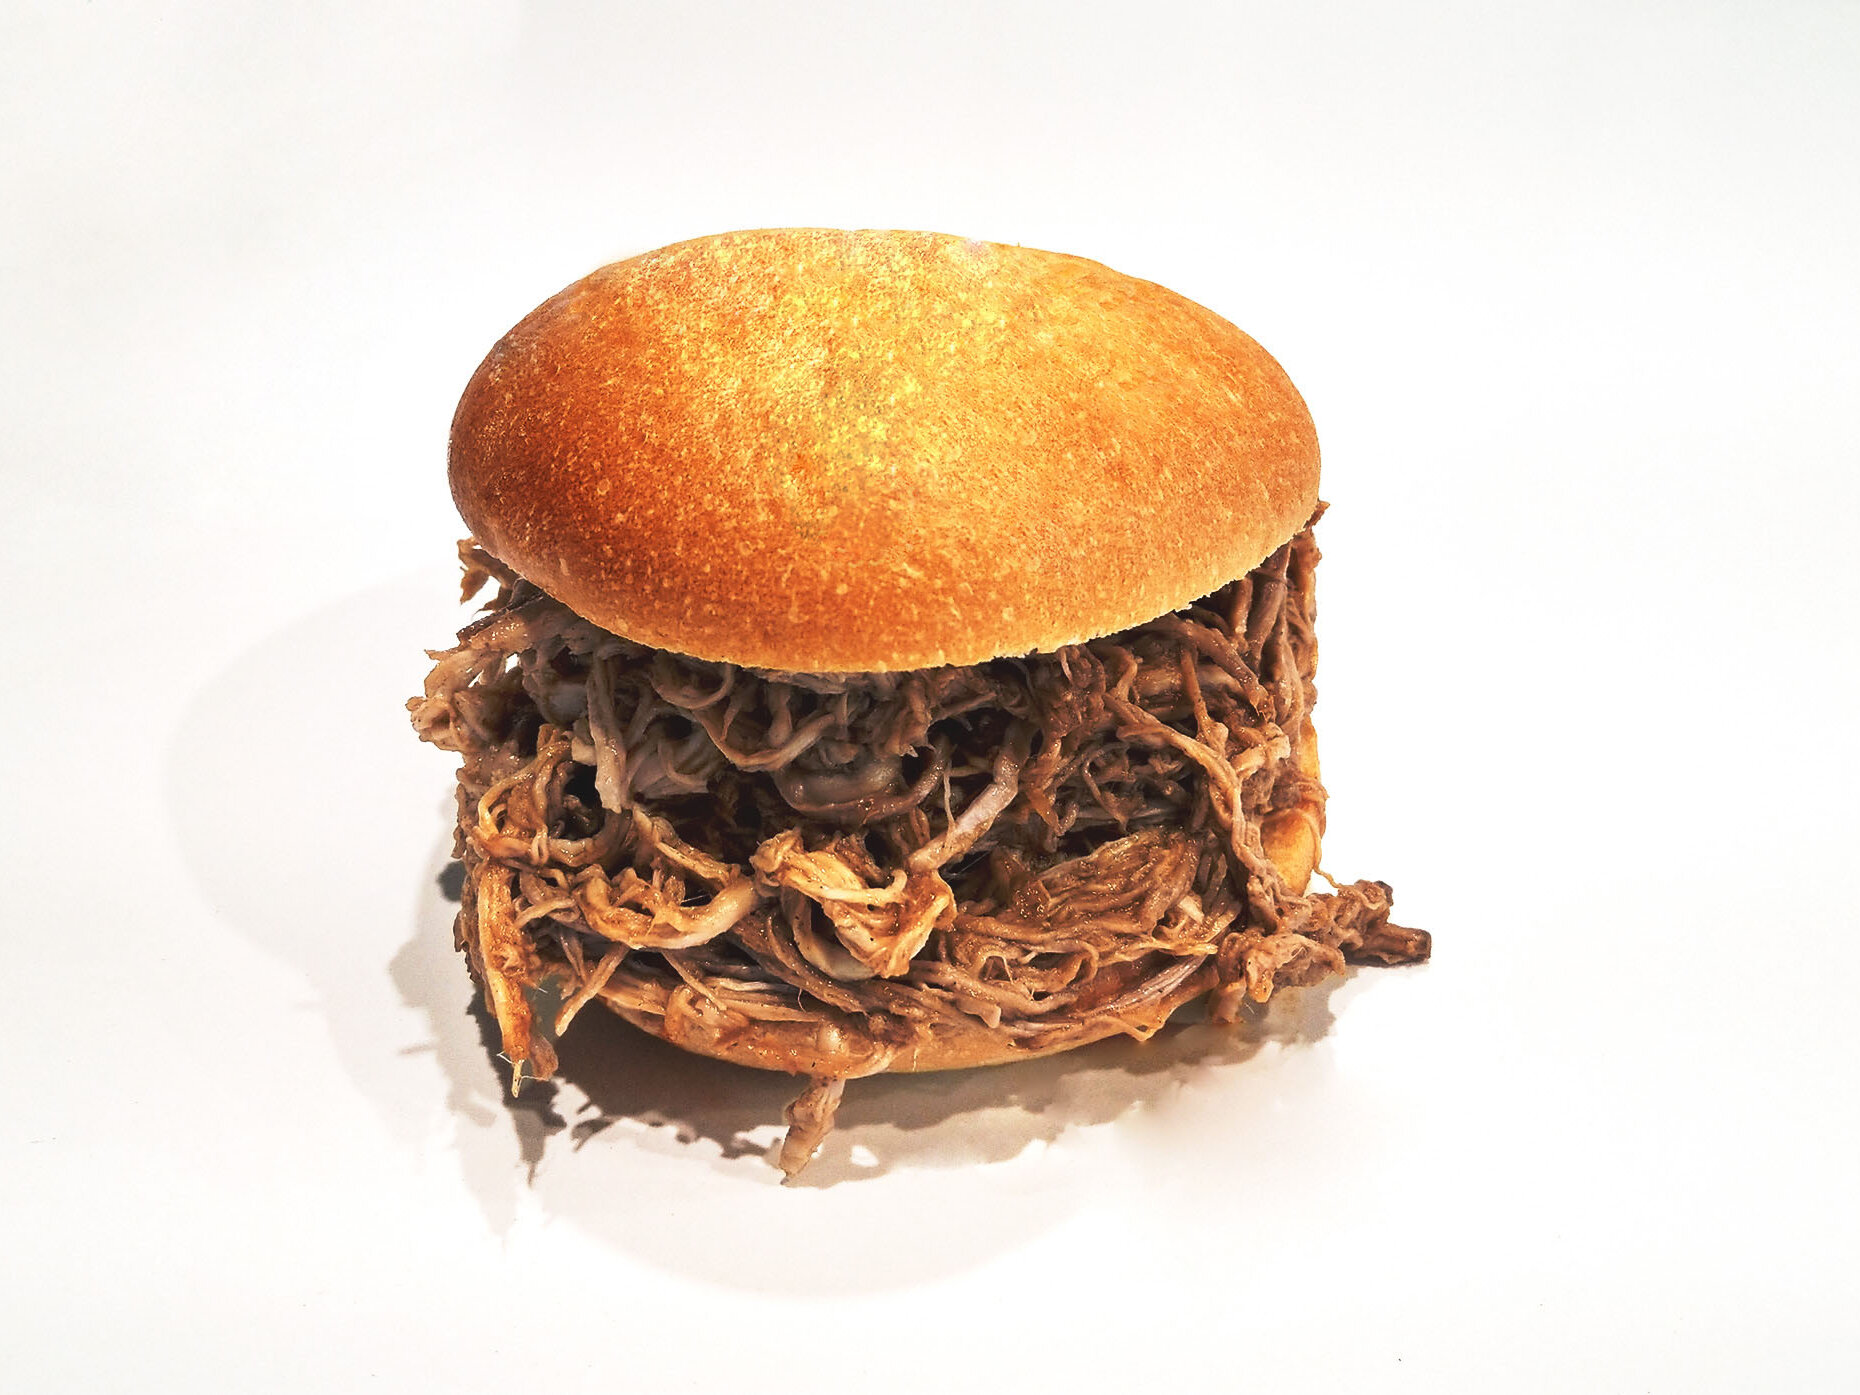 Sandwich Pulled Pork